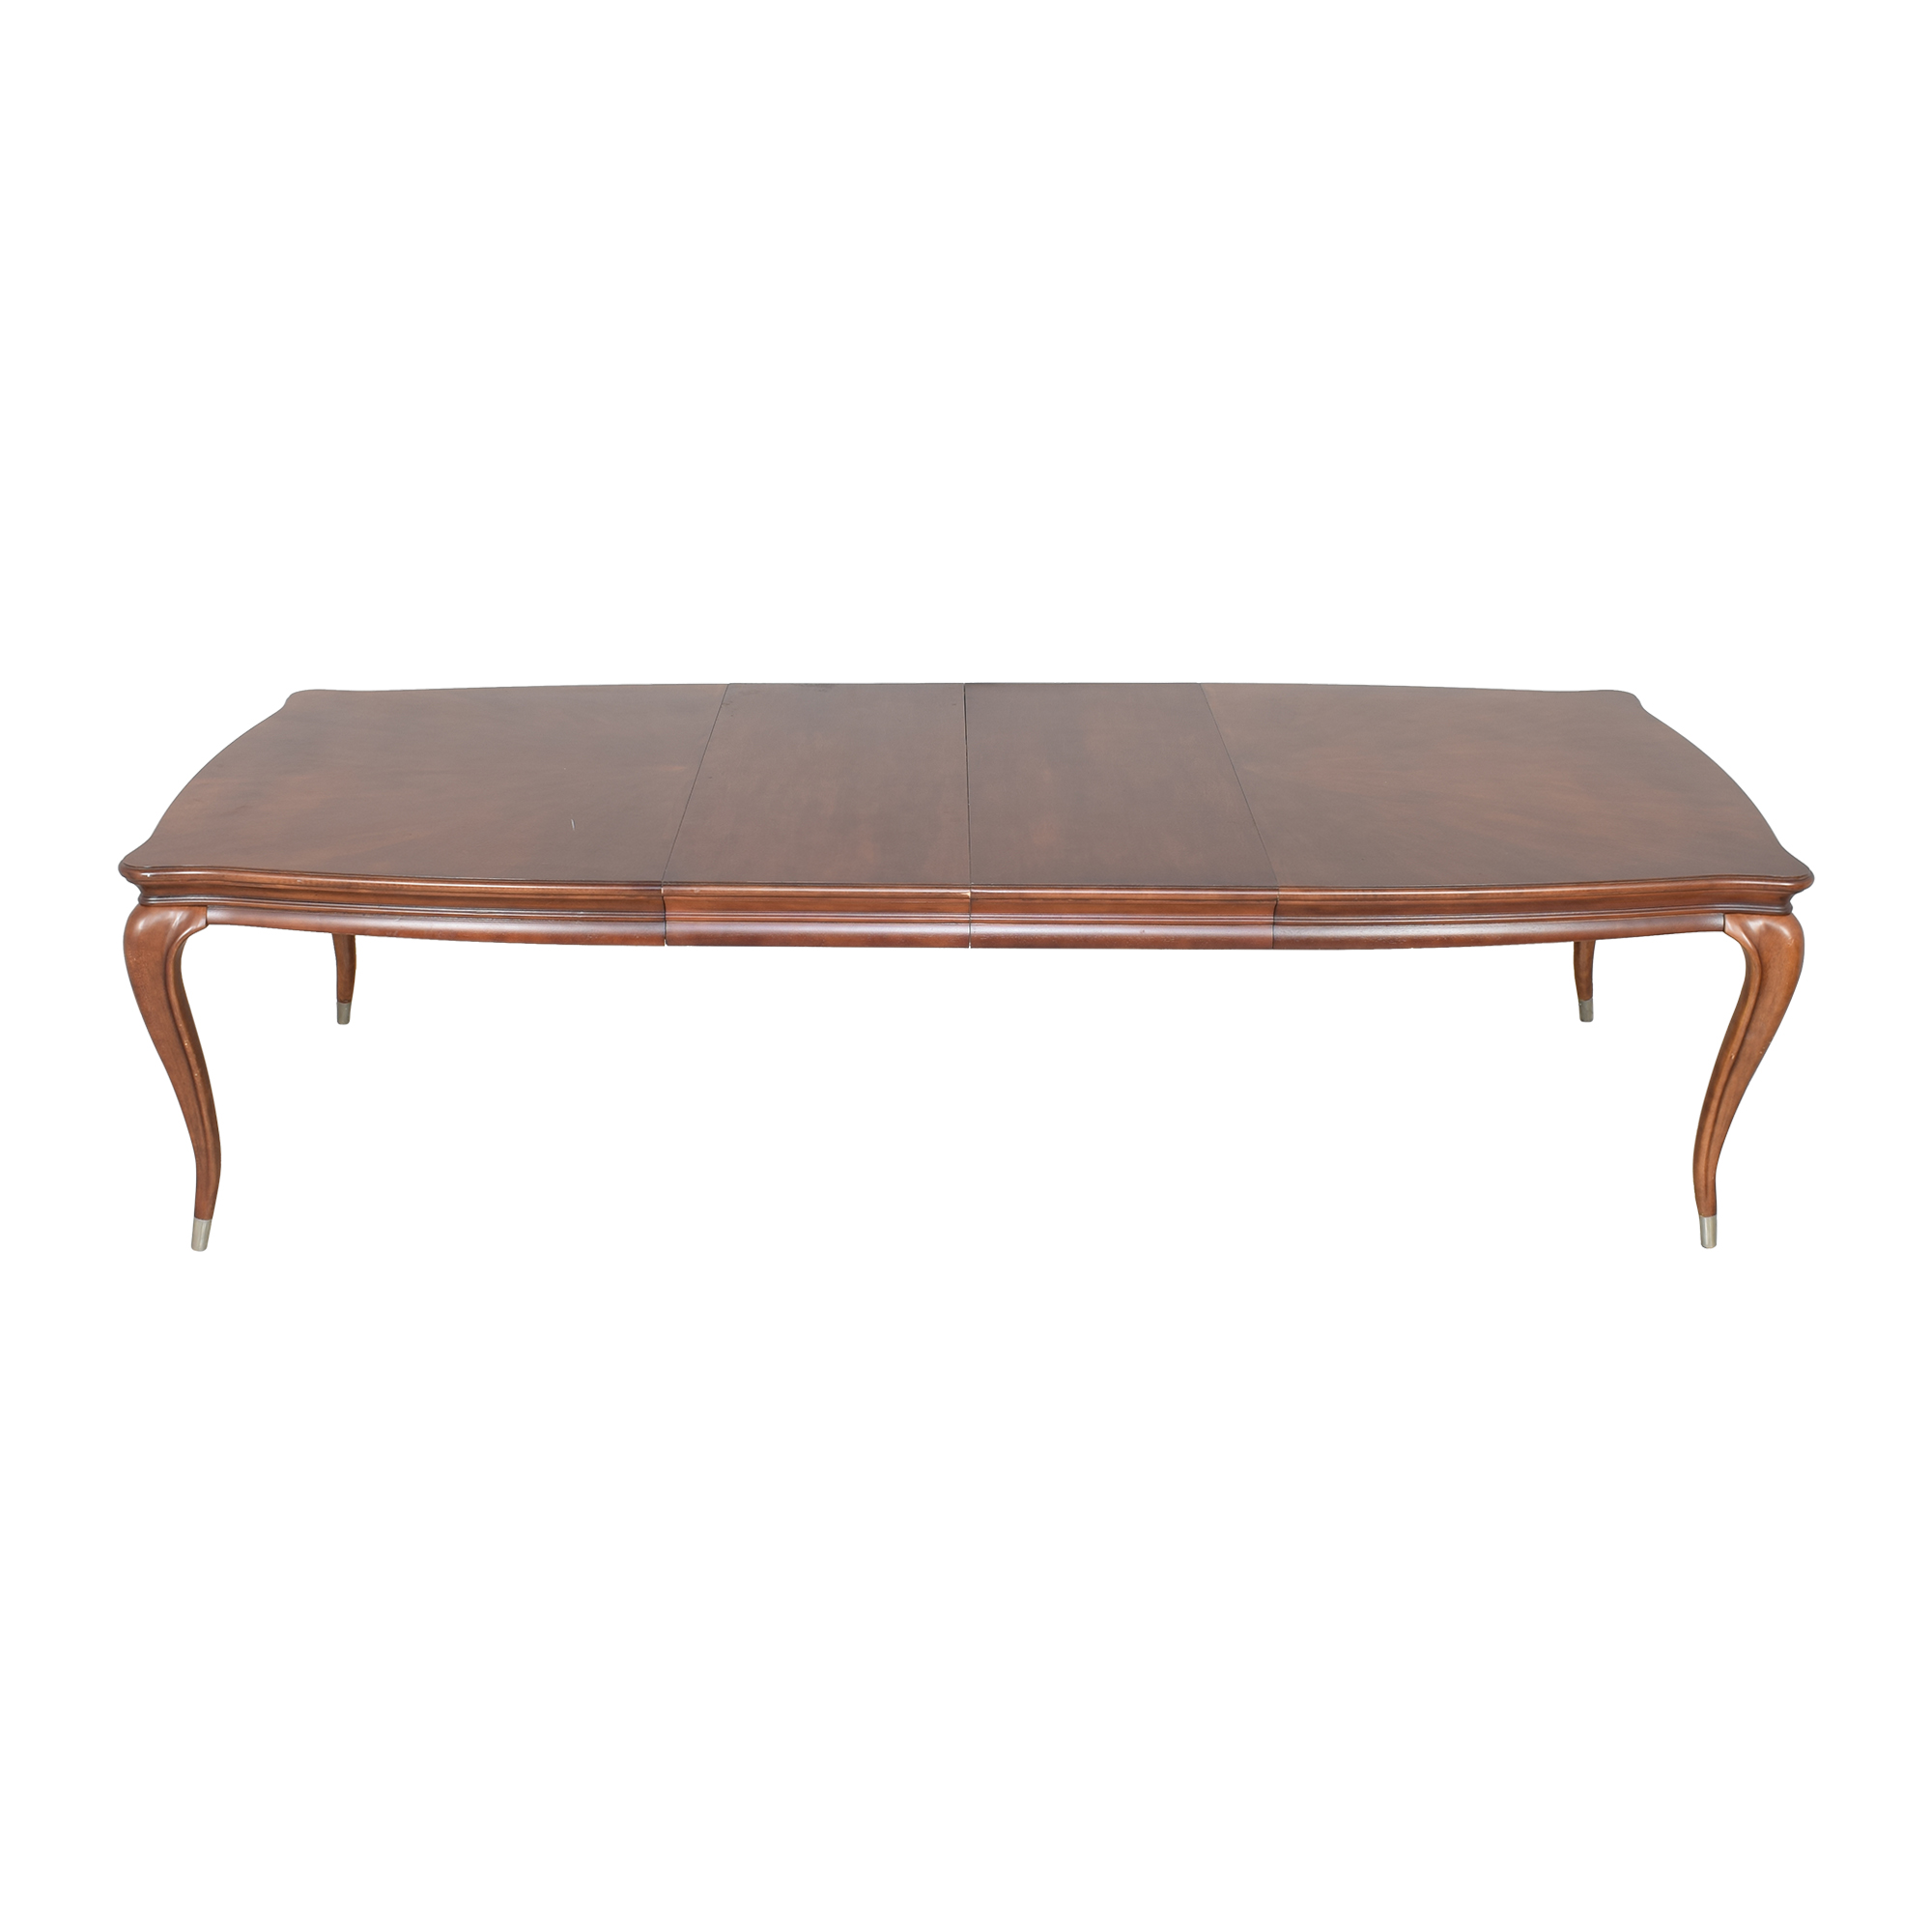 shop American Drew American Drew Extendable Queen Anne Dining Table online